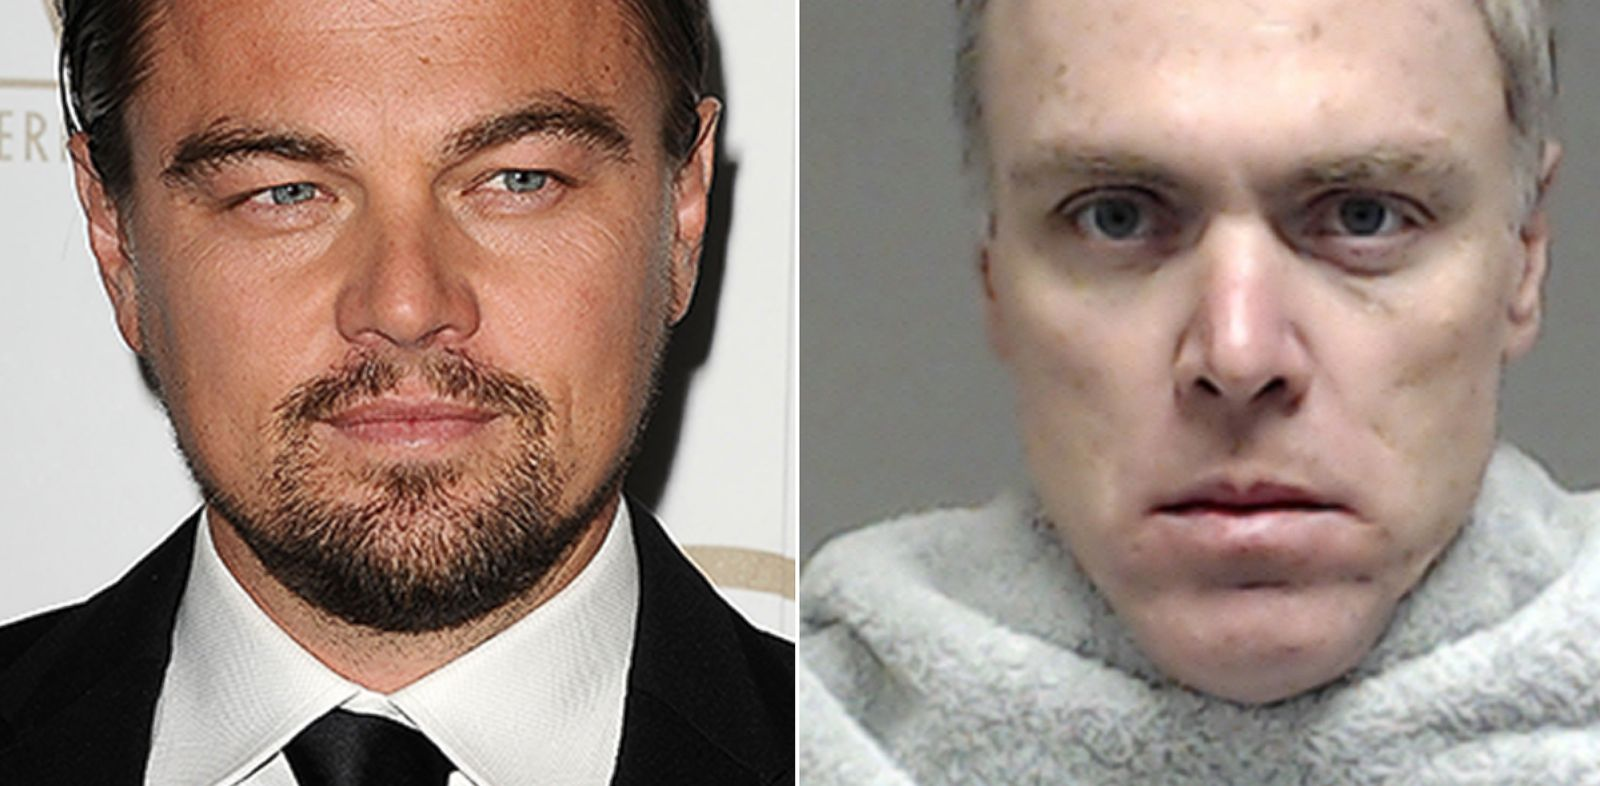 PHOTO: Adam Star Farrar is seen here in this mug shot, right, who was arrested, Jan. 24, 2014. He is the stepbrother of Leonardo DiCaprio seen here at The Beverly Hilton Hotel, Jan. 19, 2014 in Beverly Hills, Calif.